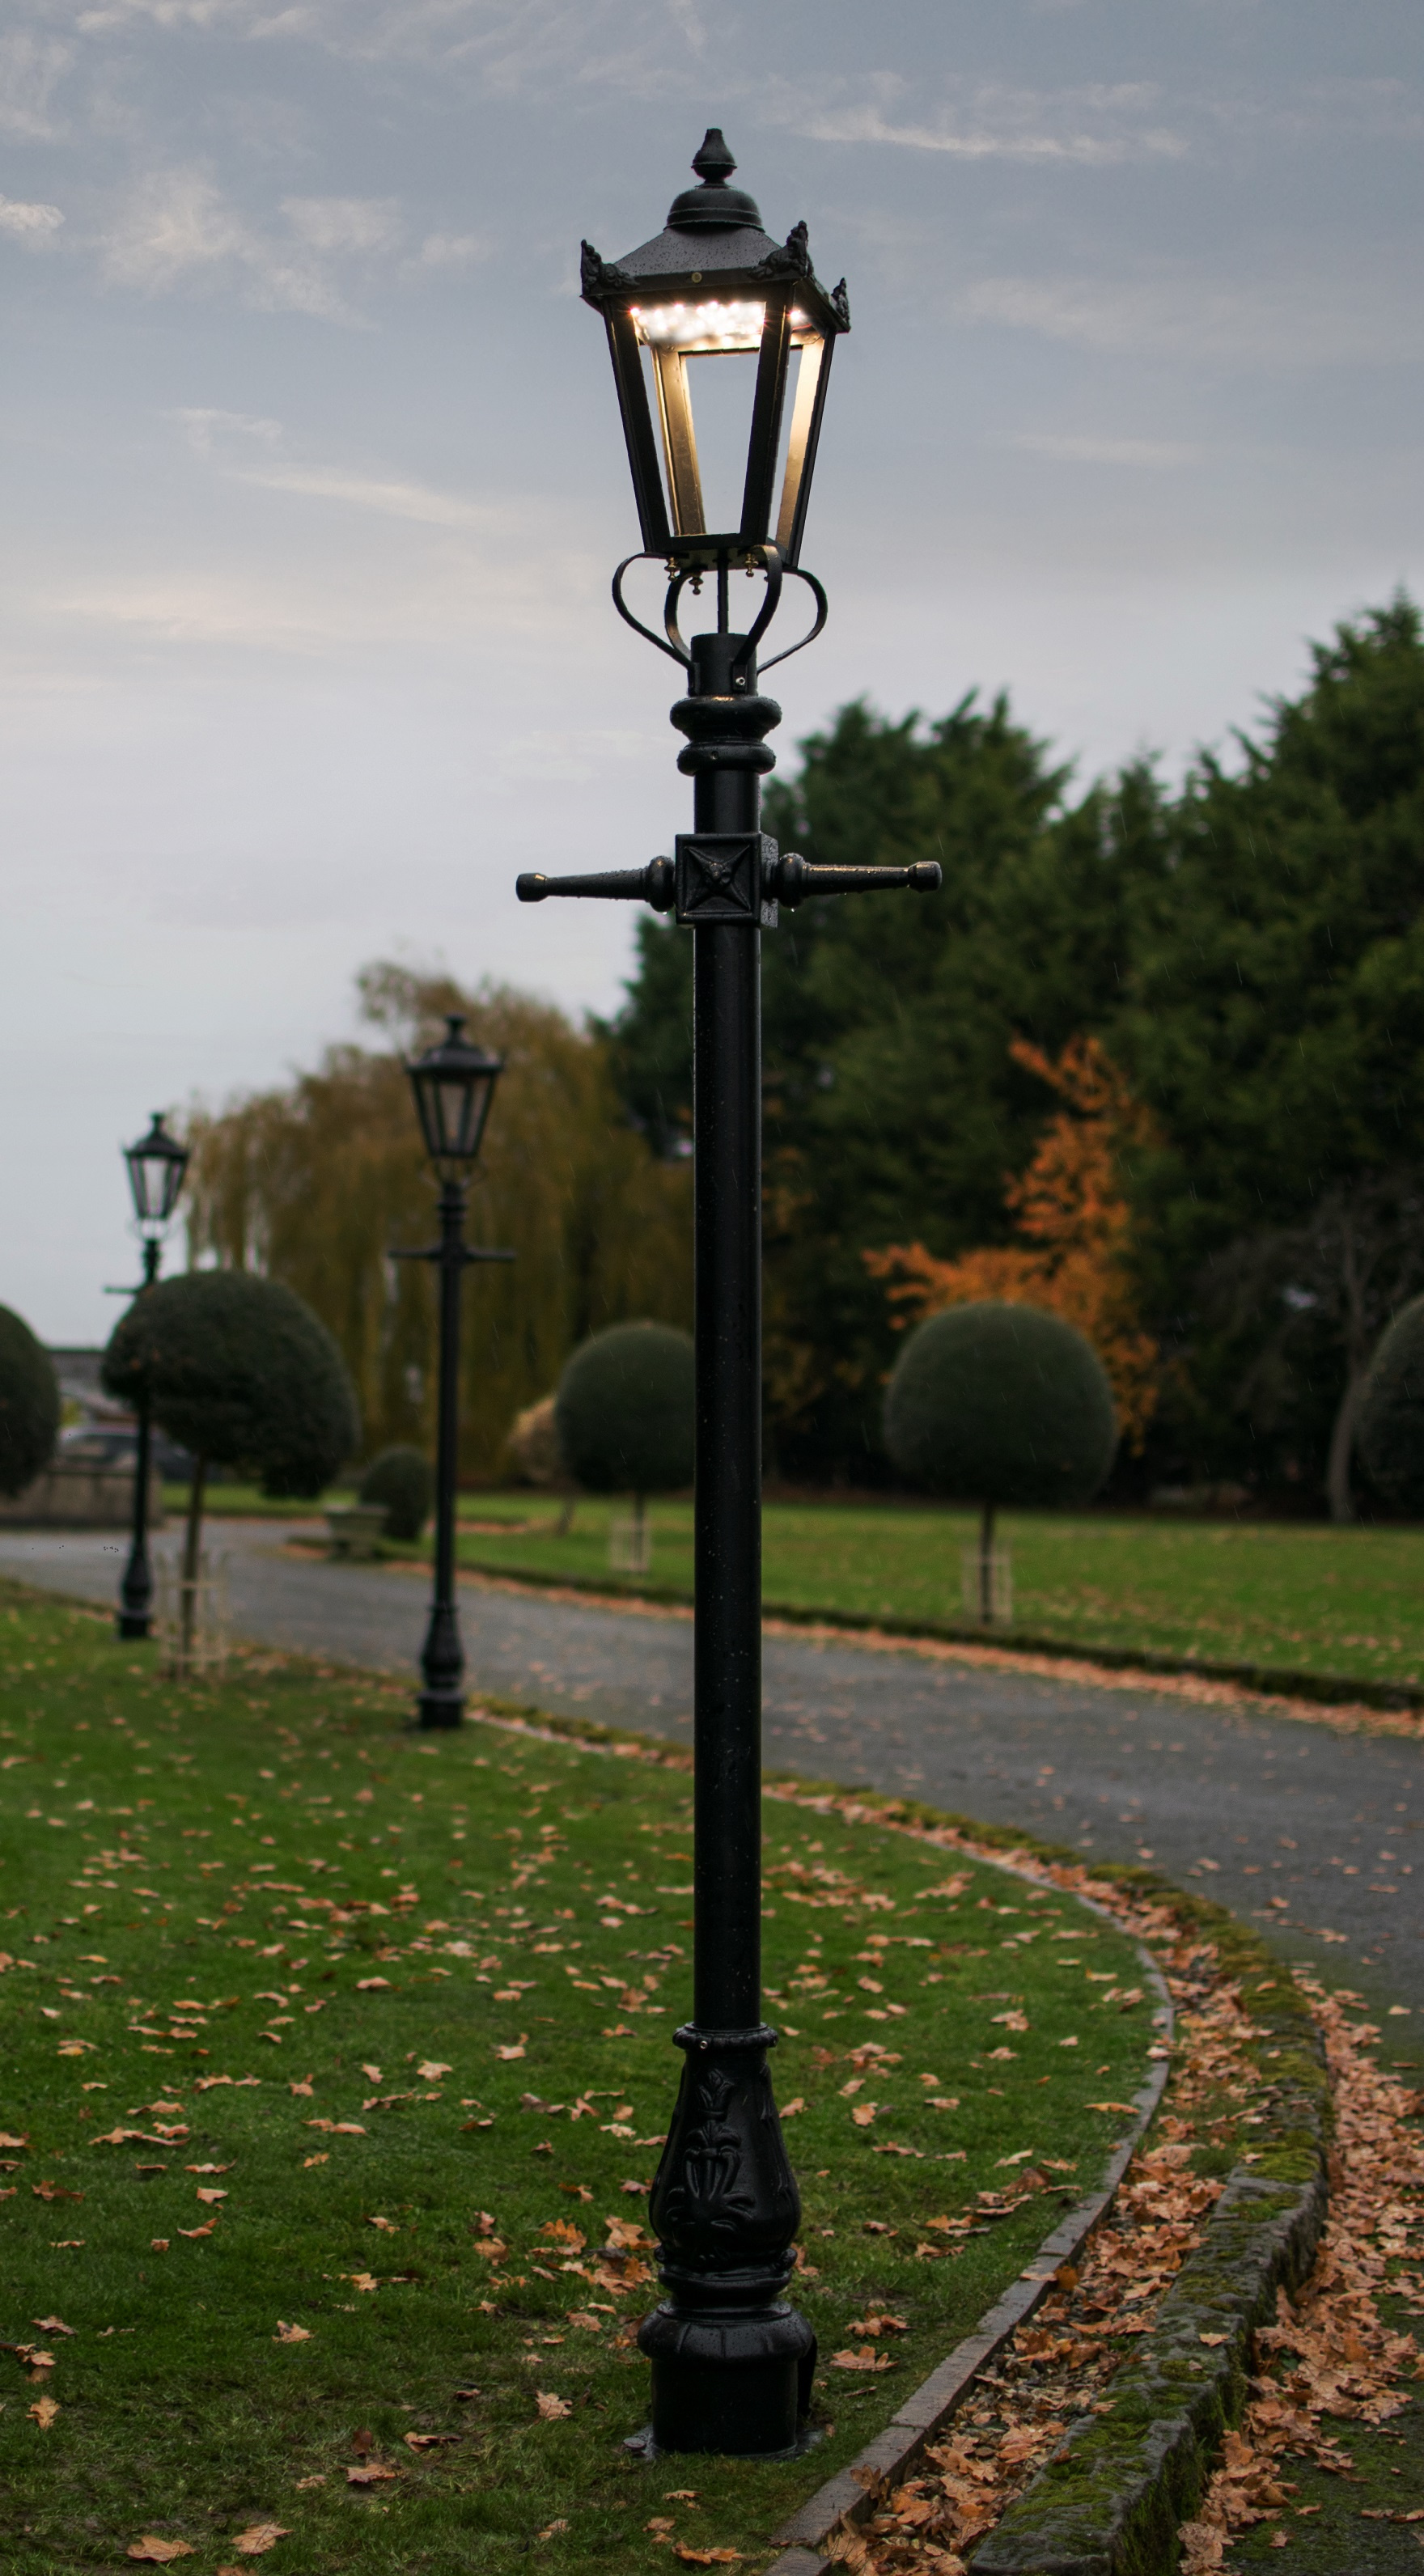 Victorian Garden Lamp Post 12.12m With LED Lantern Fitting